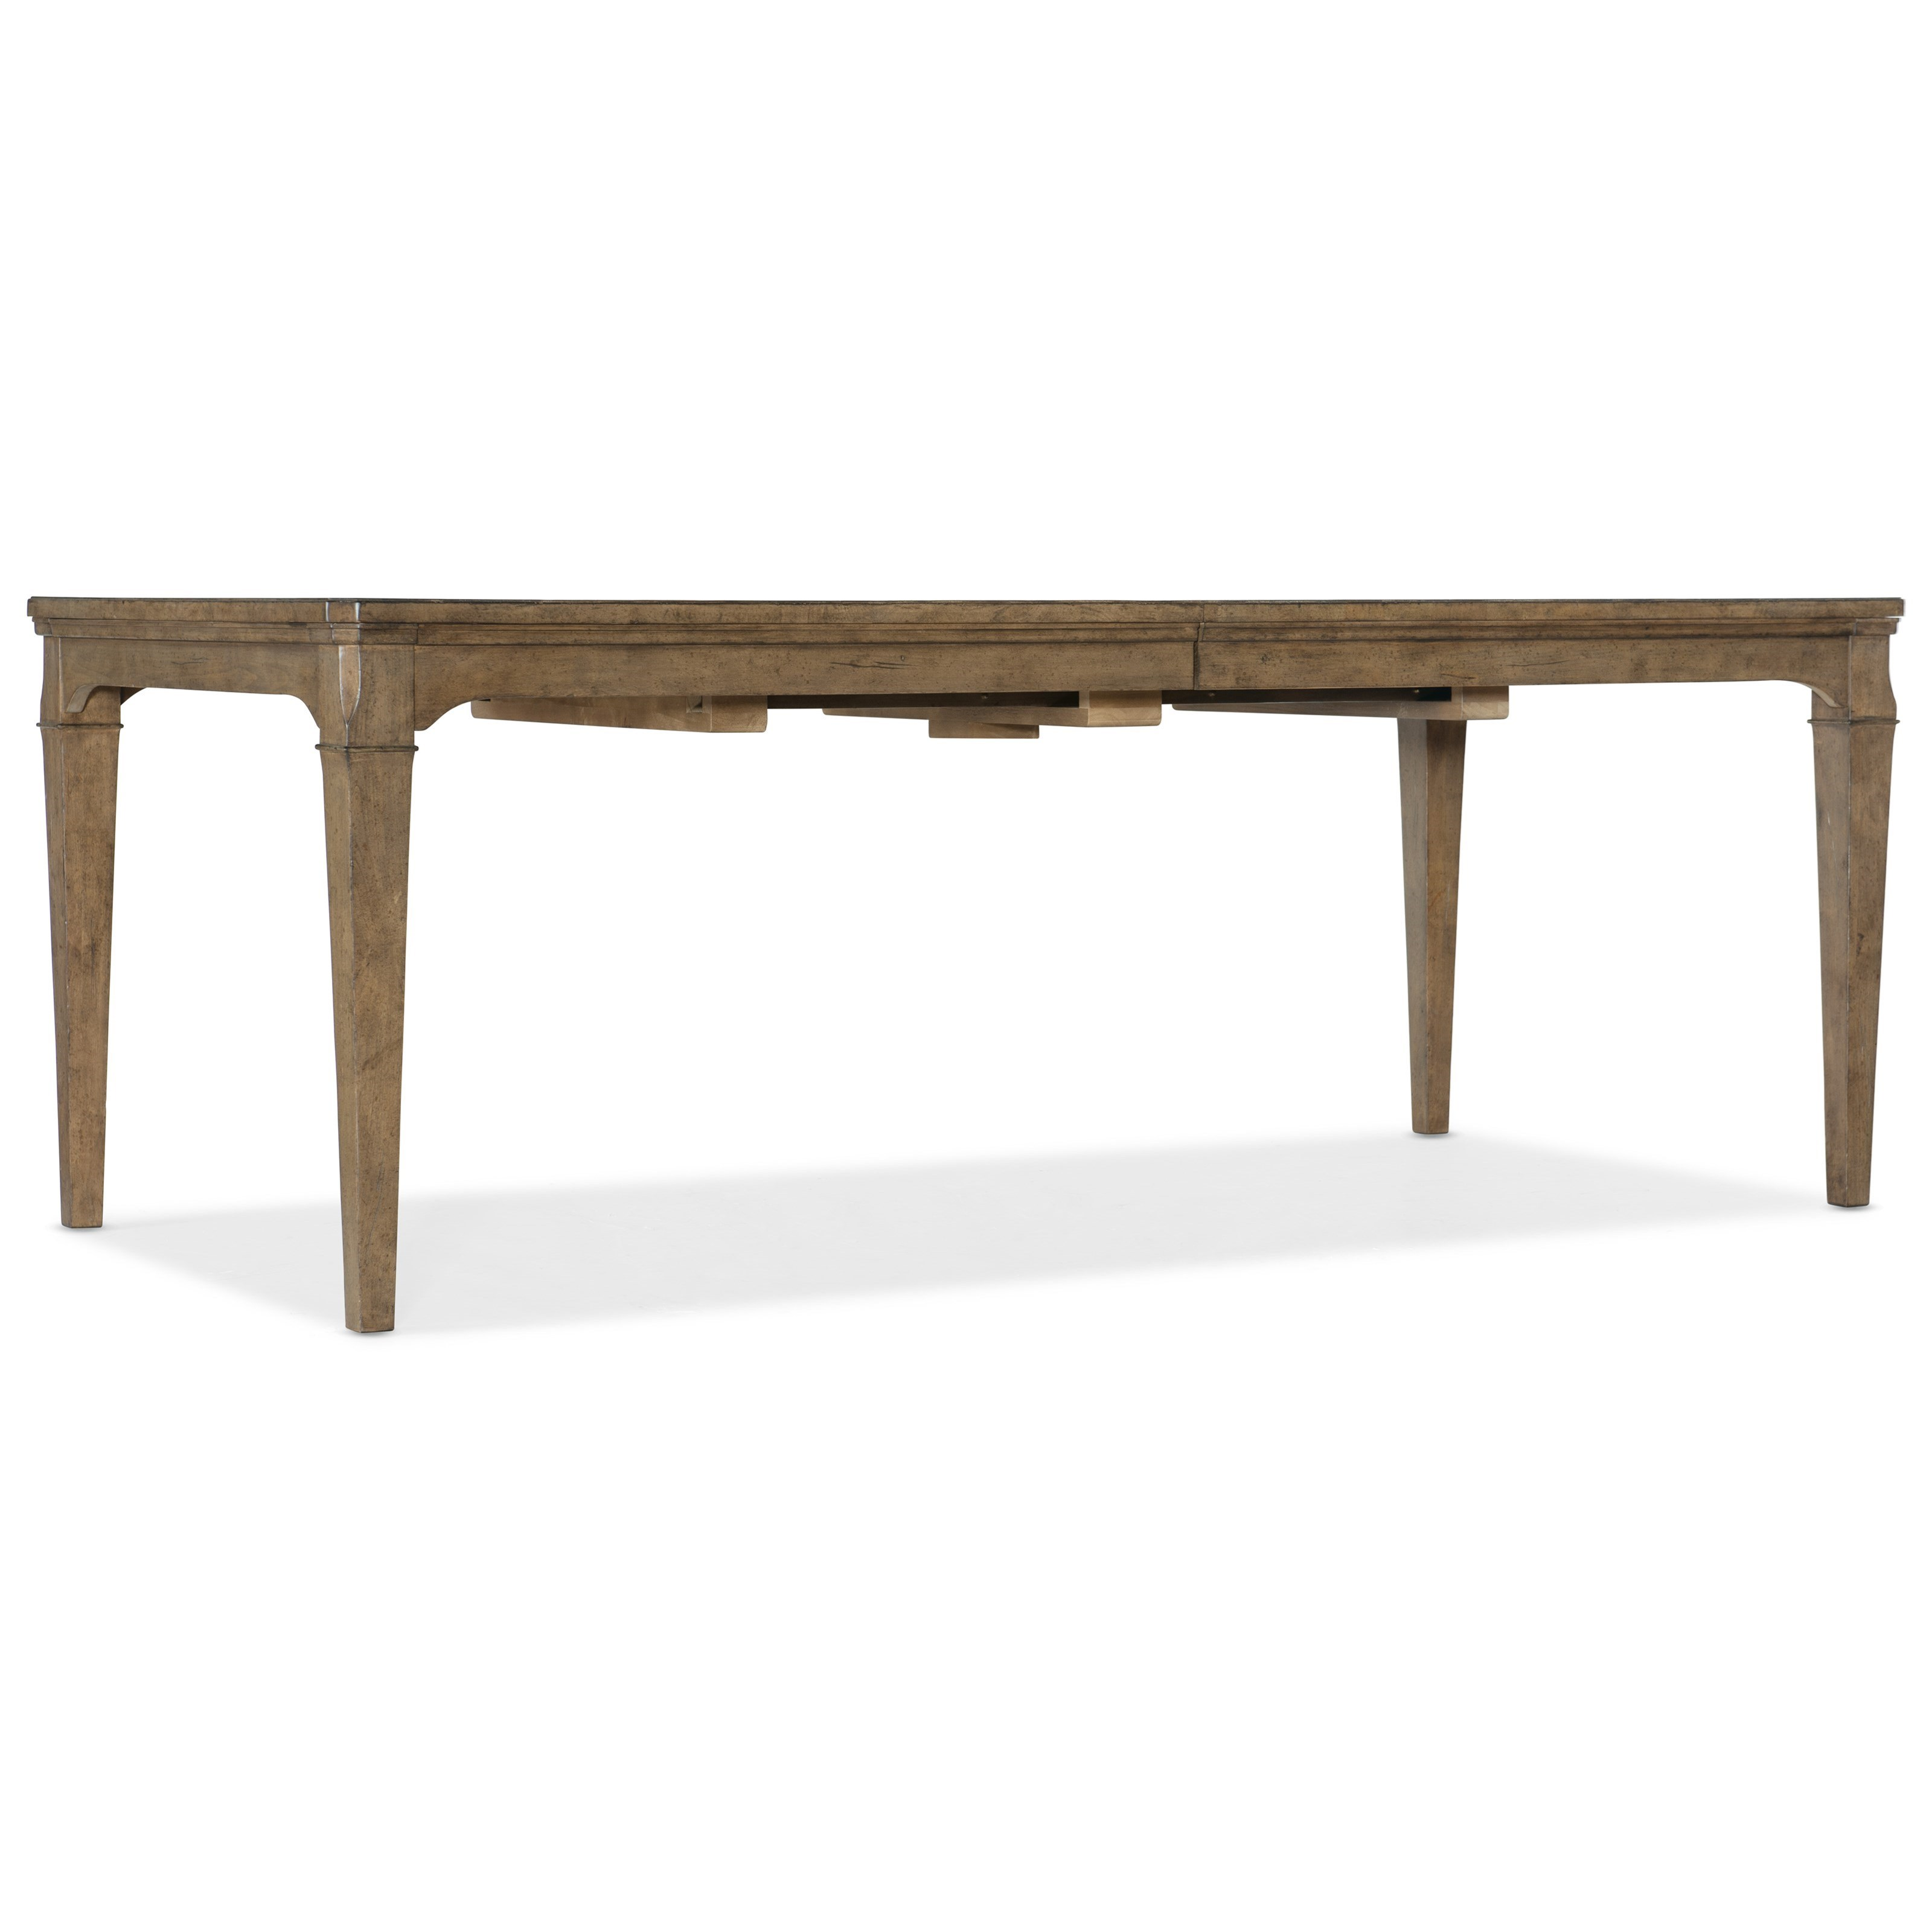 Montebello 82 Inch Rectangle Dining Table w Leaf by Hooker Furniture at Baer's Furniture